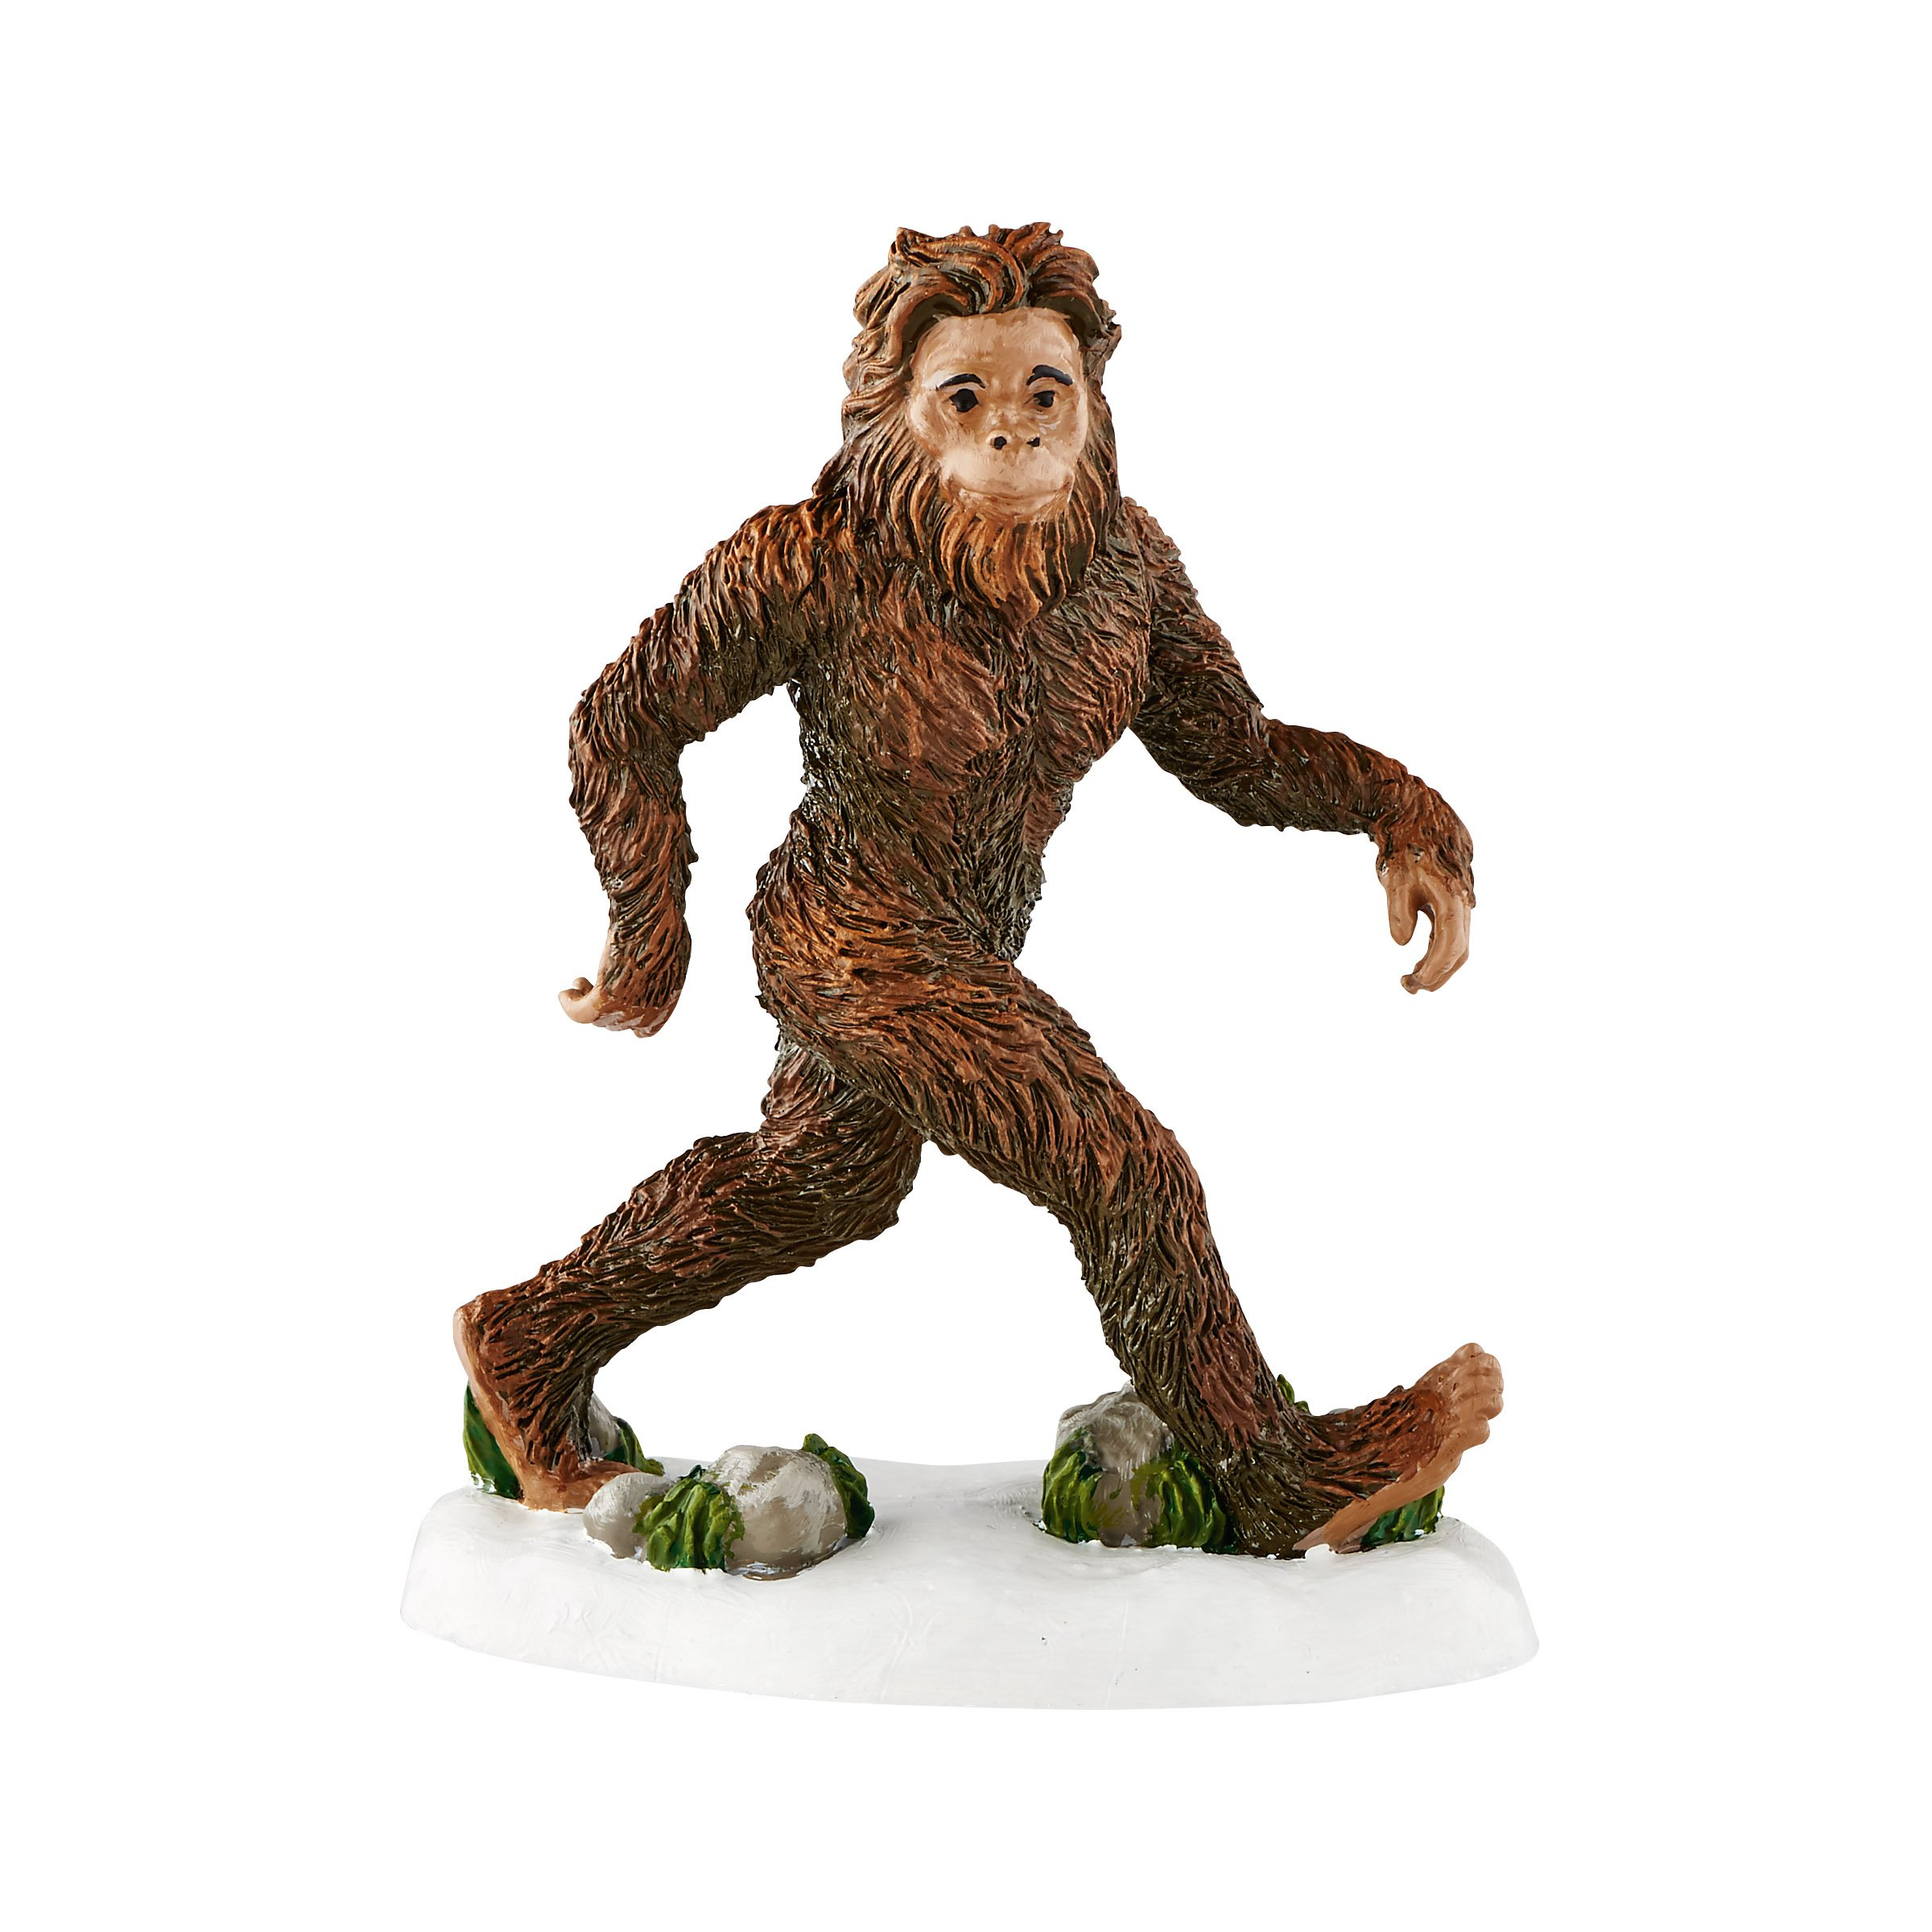 Department 56 4054209 Accessories for Villages Sasquatch Accessory Figurine, 3.82 inch